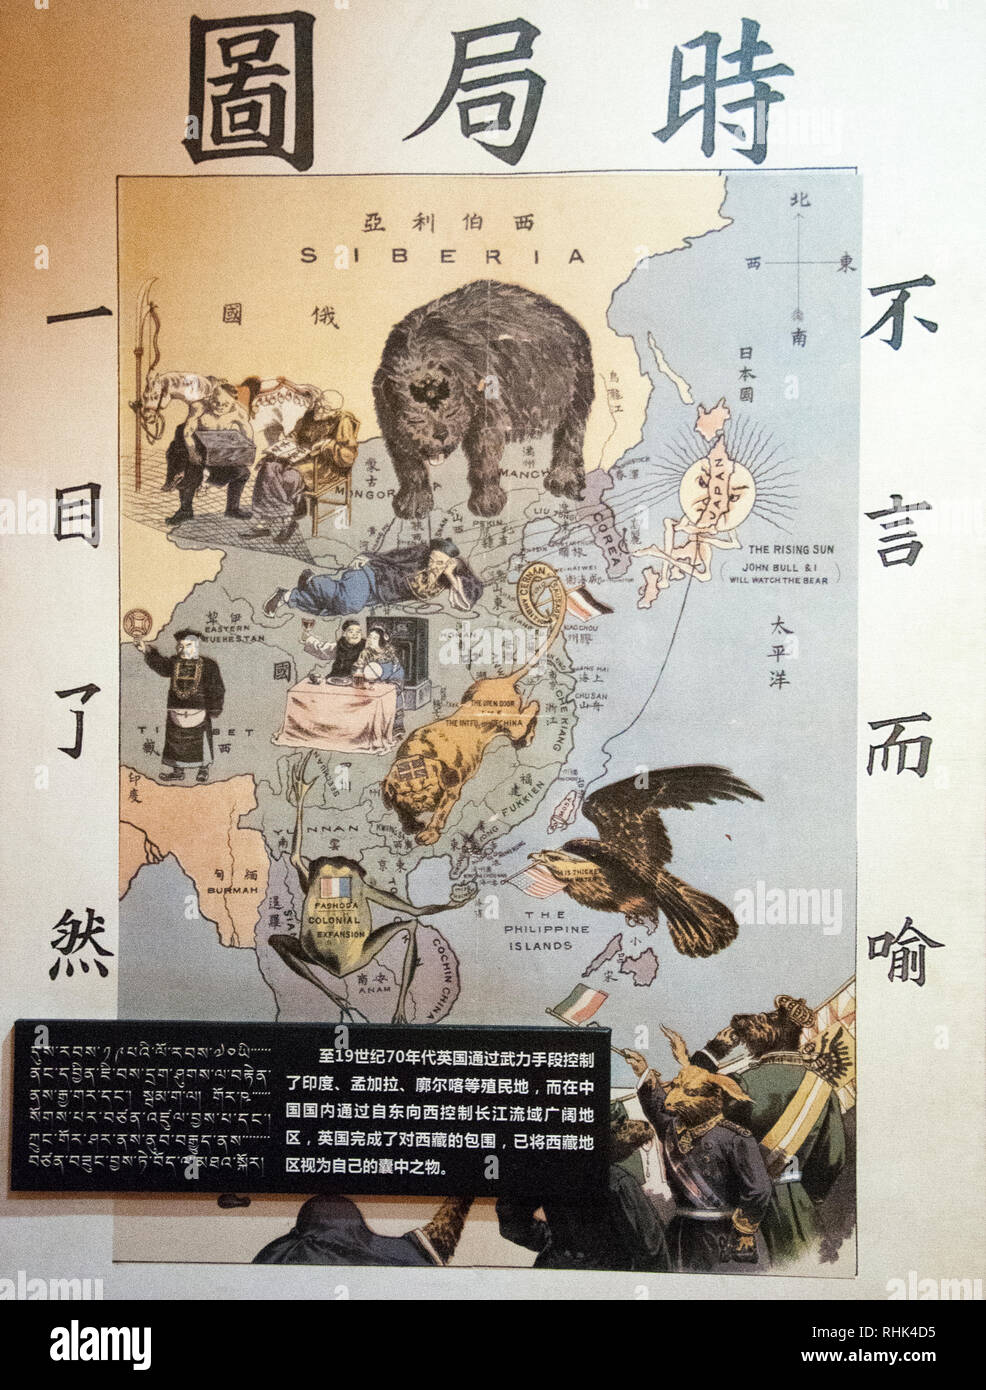 Historic map forms museum display at Gyantse, Tibet, China, commemorating Tibetan resistance to the invading British Younghusband expedition of 1904. - Stock Image